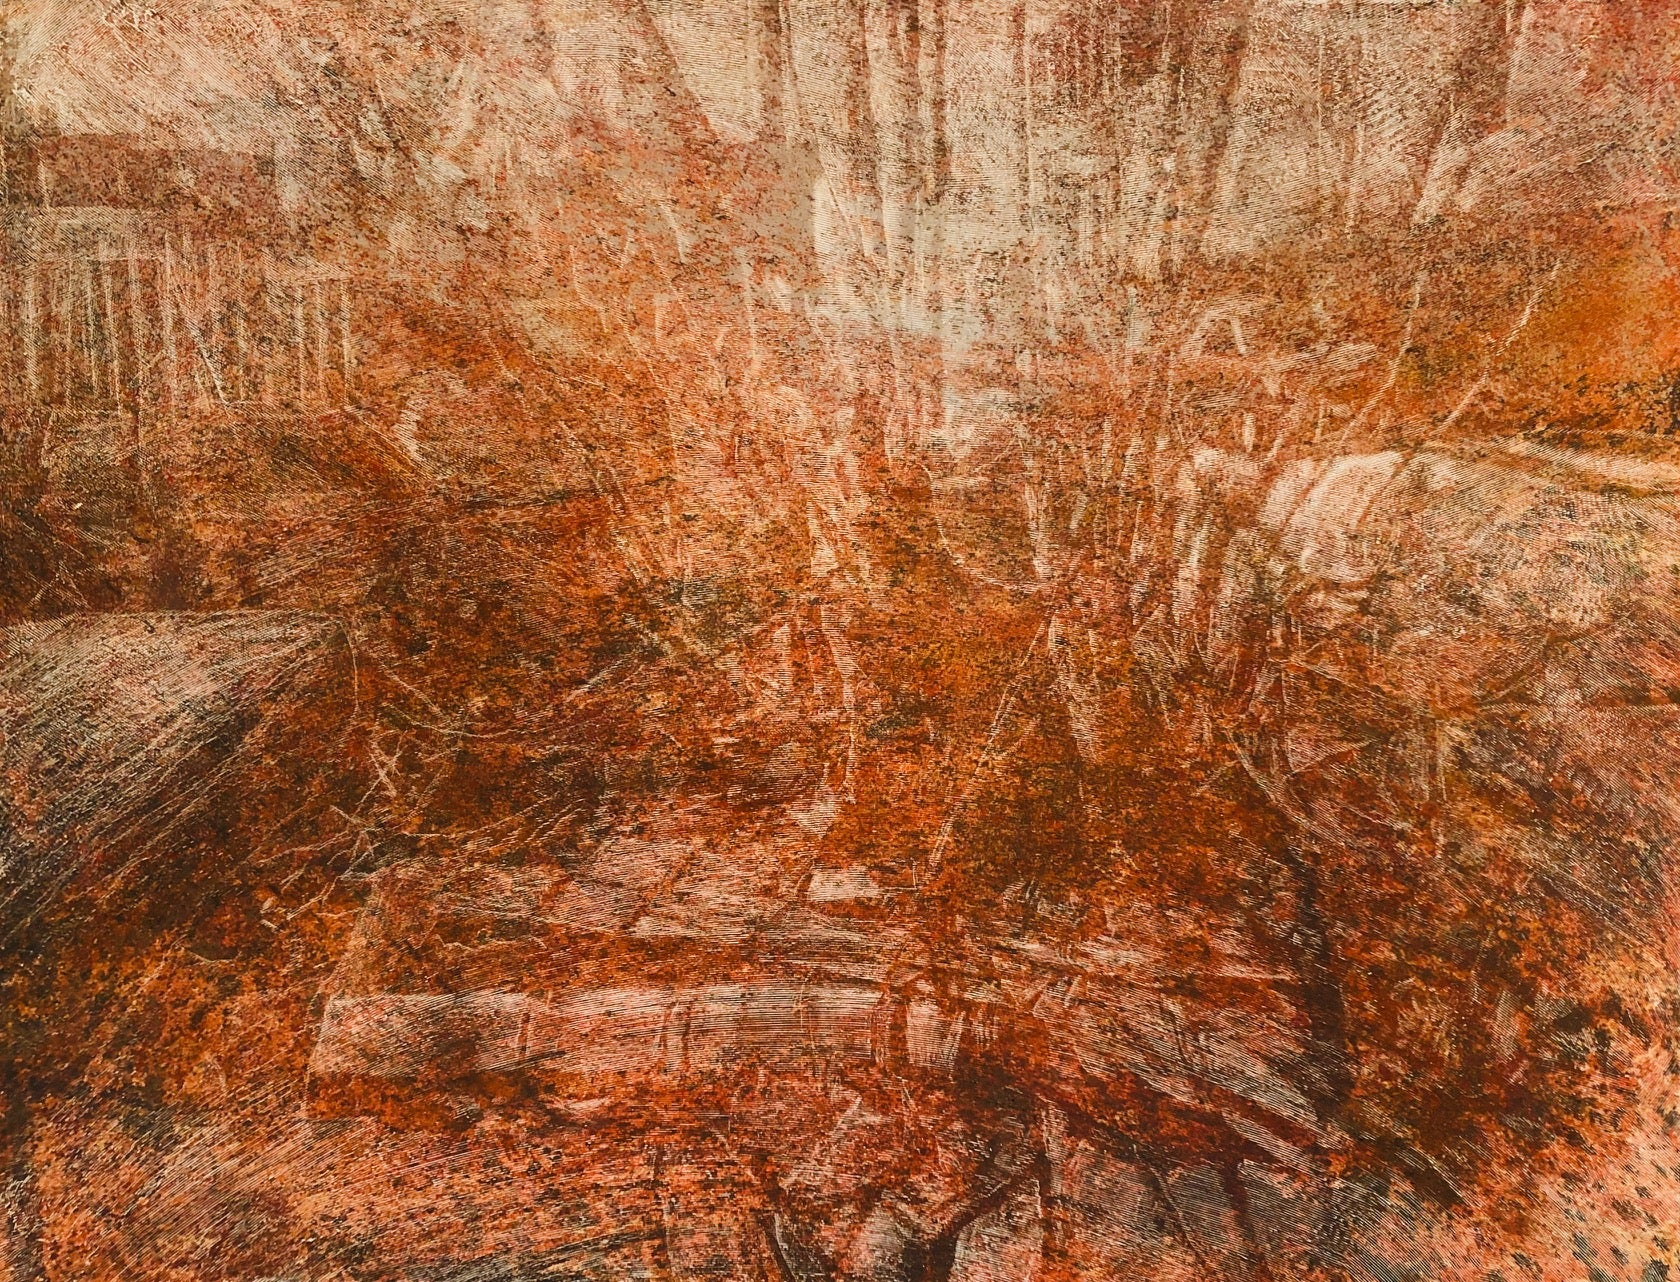 """Untitled - Tree Series"" Sienna and orange textured surface with ghost  images"